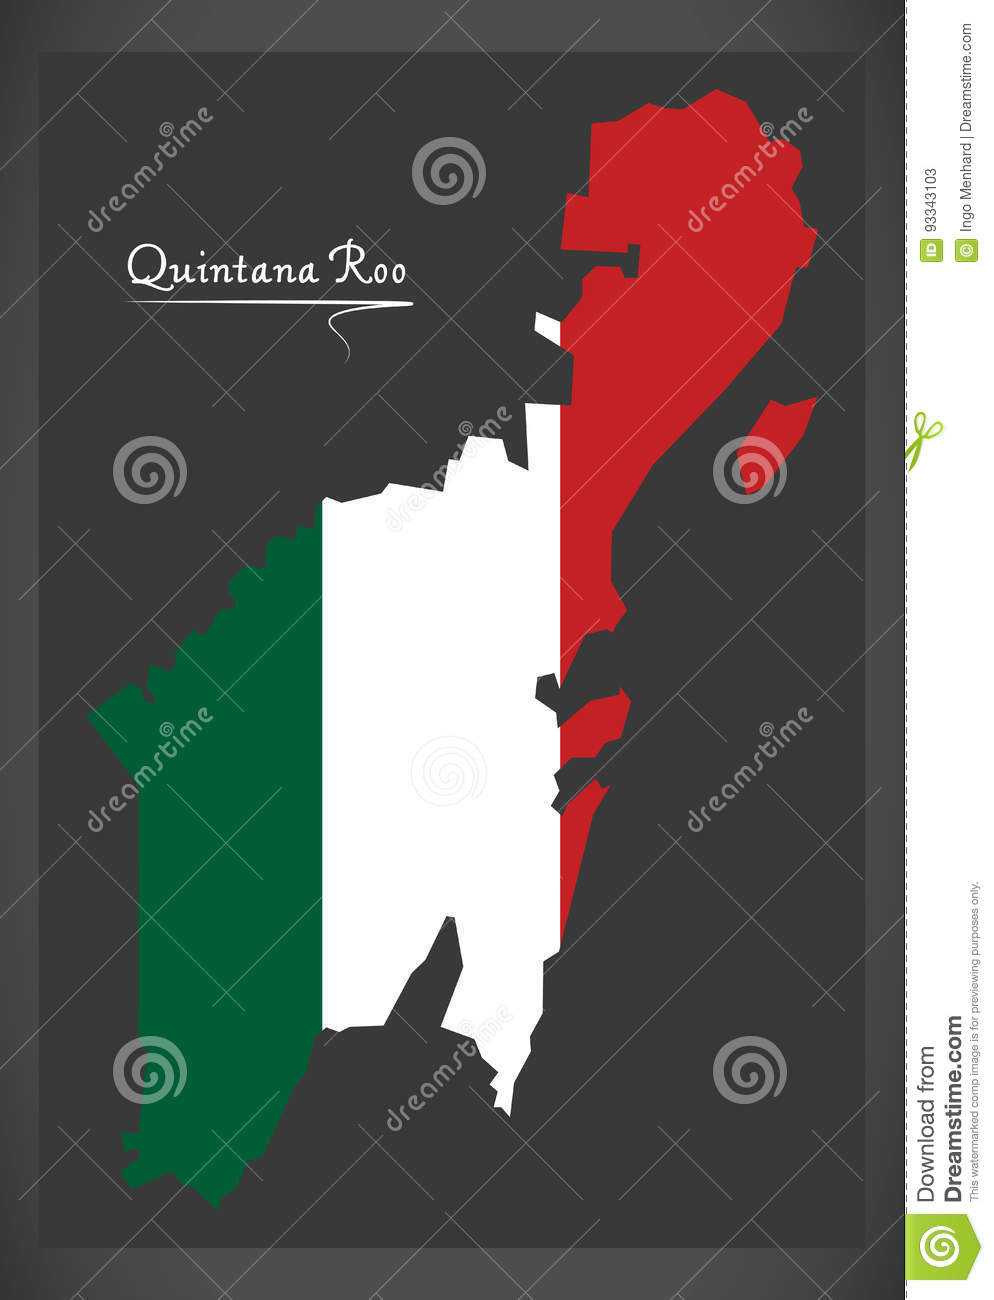 Quintana Roo Map With Mexican National Flag Illustration Stock